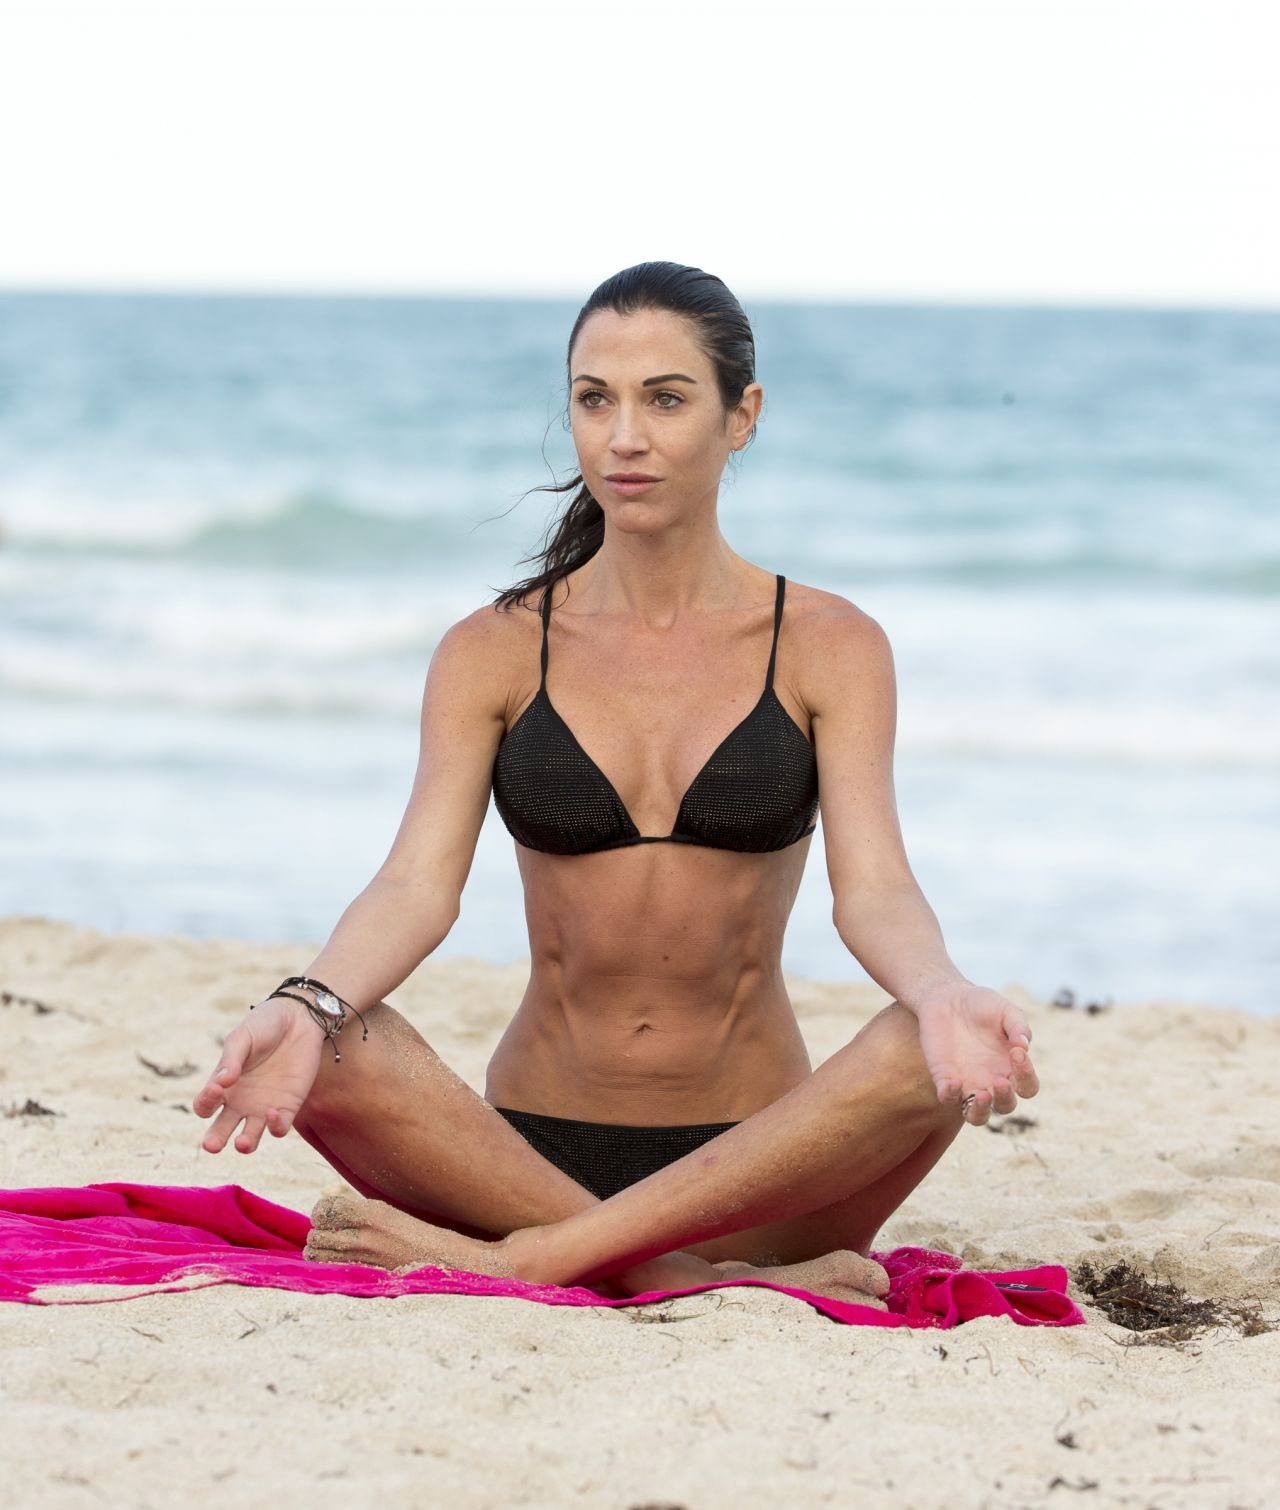 Federica Torti in a Bikini - Doing Yoga on the Beach in Miami - April 2014